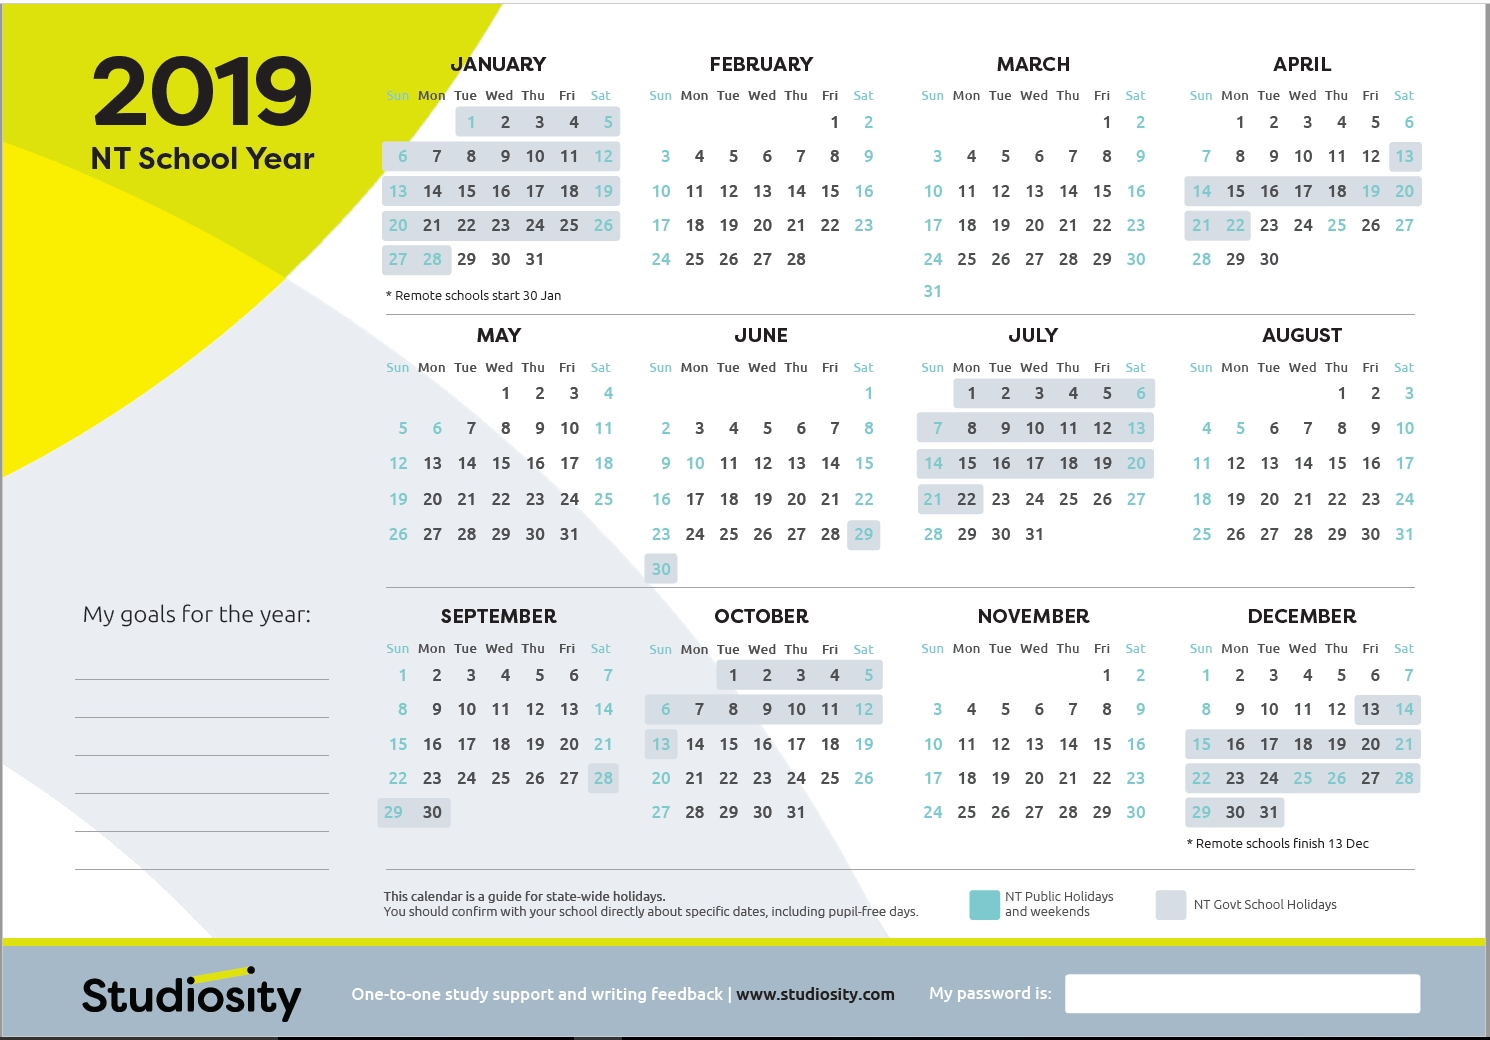 School Terms And Public Holiday Dates For Nt In 2019 | Studiosity Iphone 5 Calendar Public Holidays